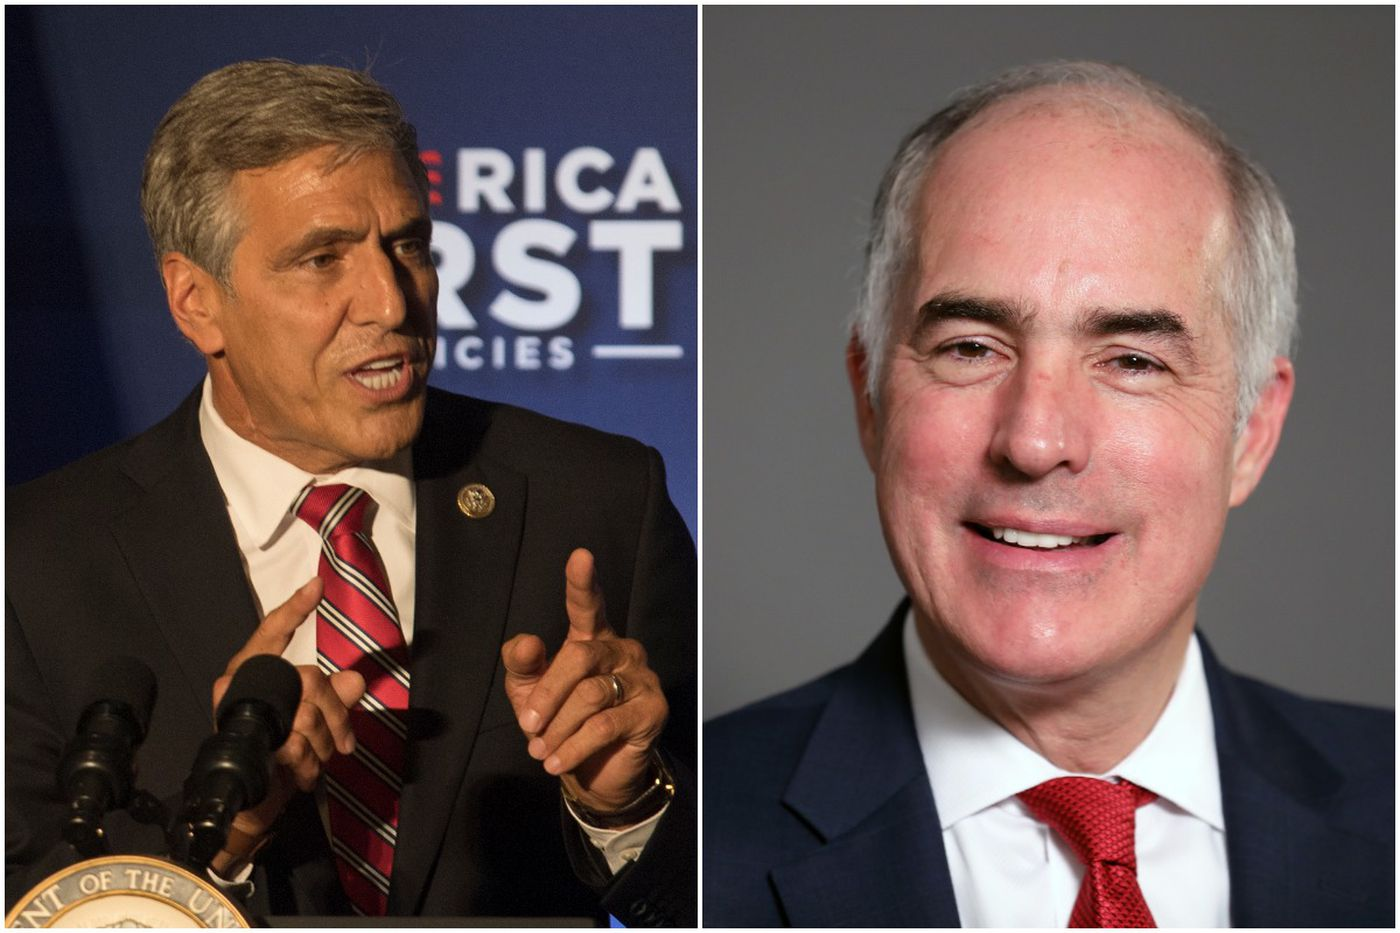 I bet Bob Casey Sr. would agree with Lou Barletta when it comes to campaign ads | Christine Flowers